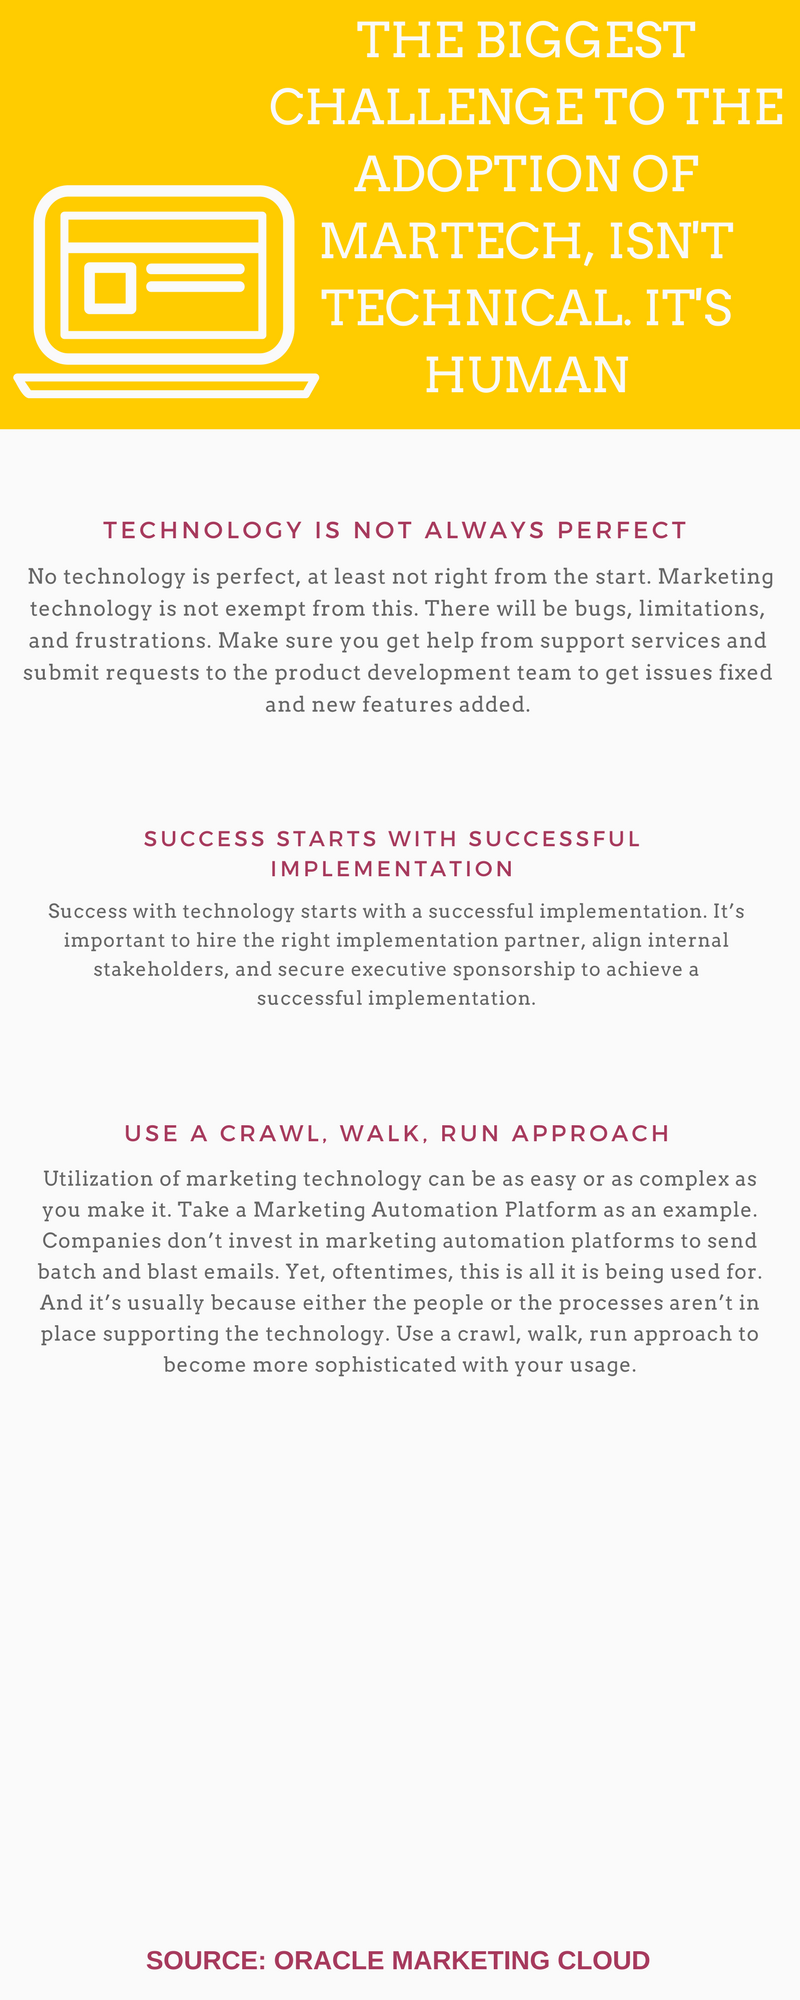 S2-5-C How Do You Get More From Your MarTech Investment- Infographic Part 2 V2